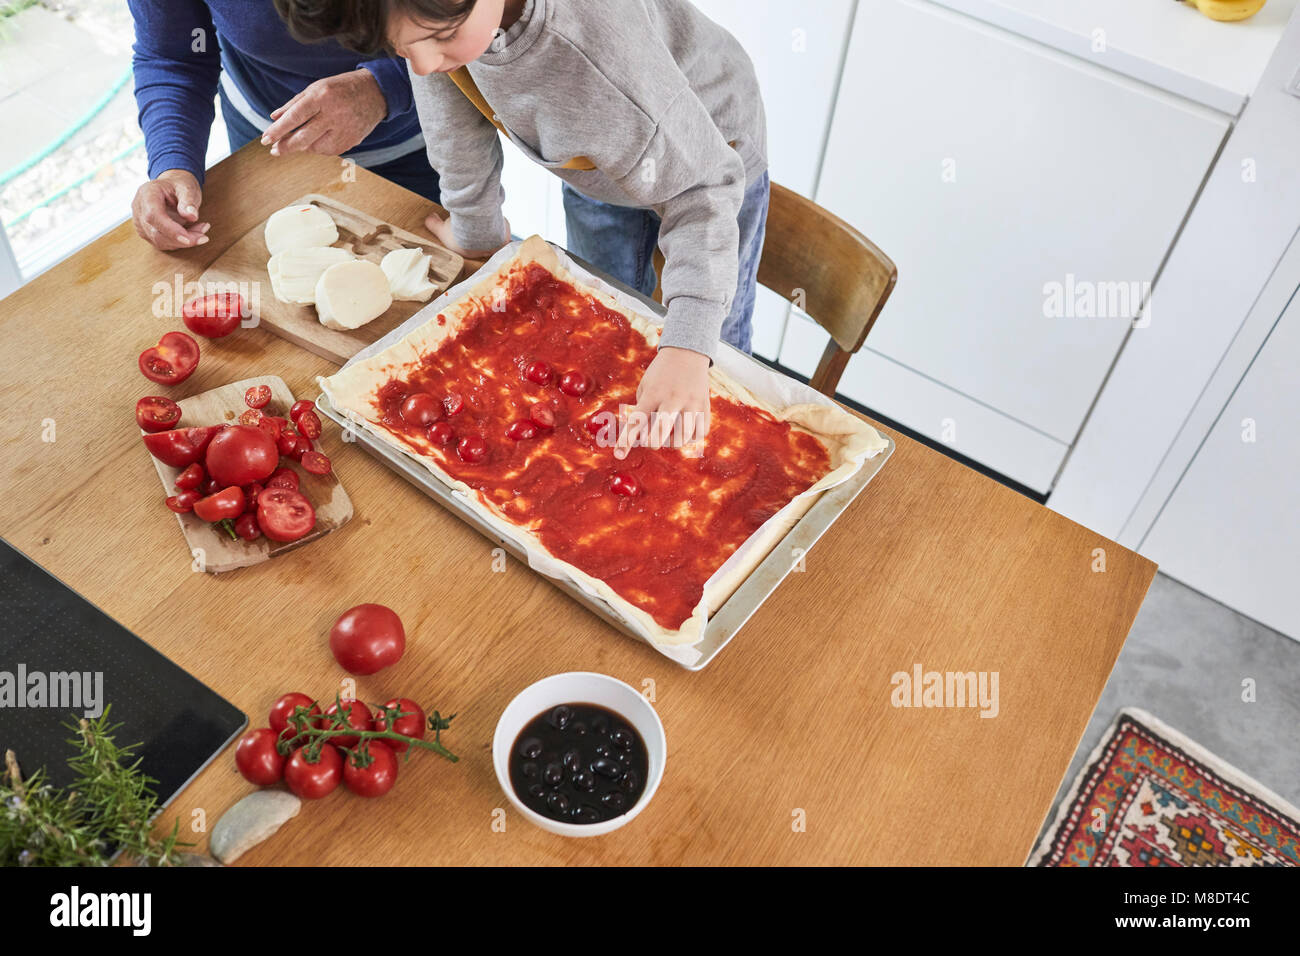 Grandmother and grandson making pizza in kitchen, elevated view - Stock Image